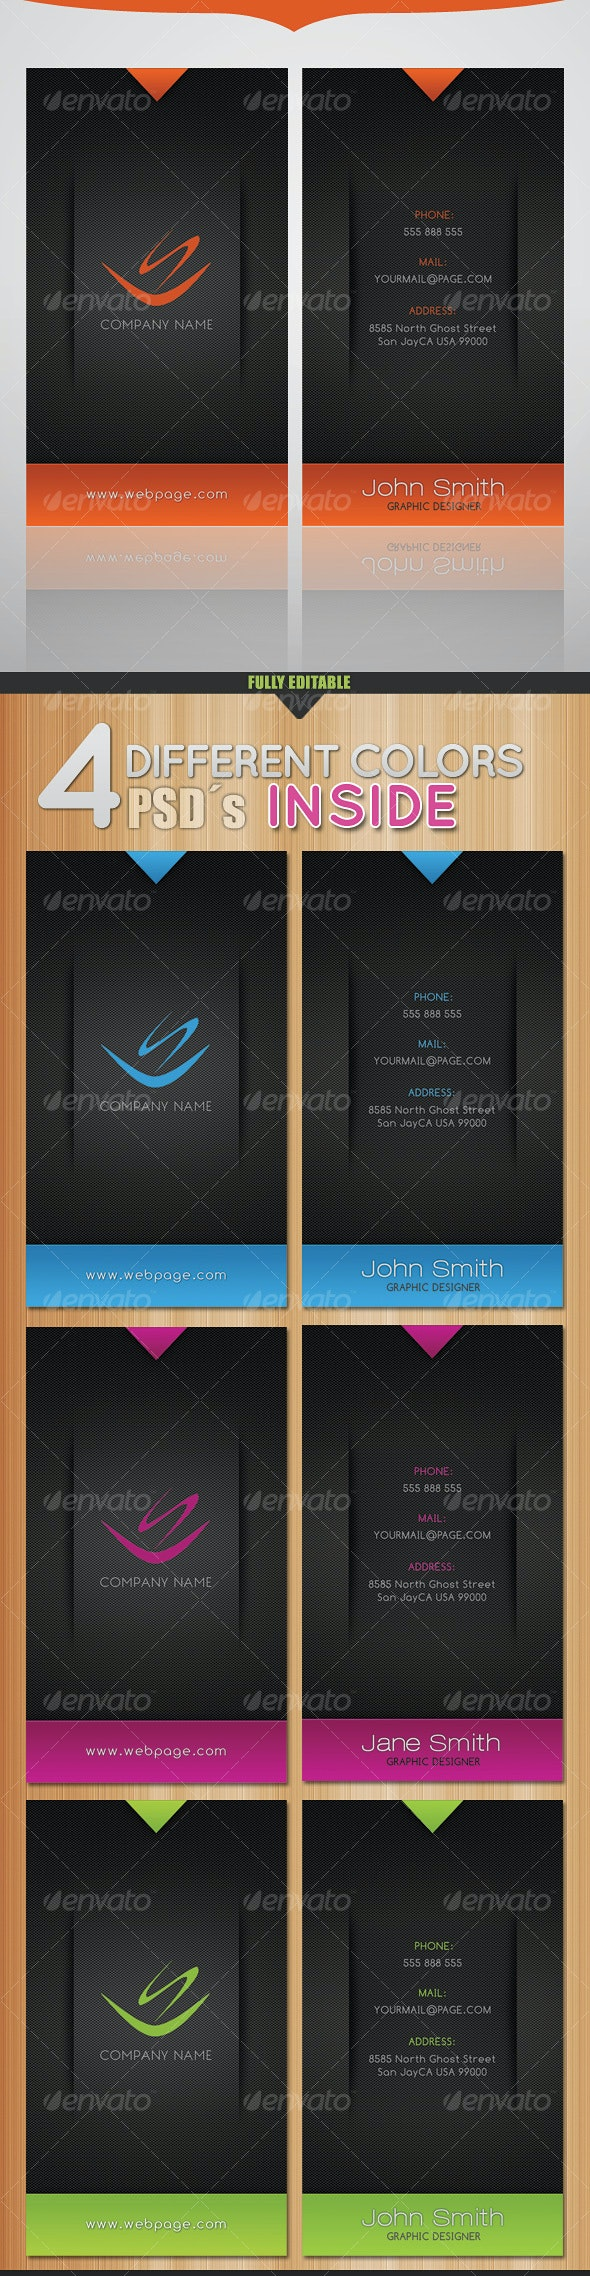 Modern Colors Business Card - 4 Different Colors - Corporate Business Cards